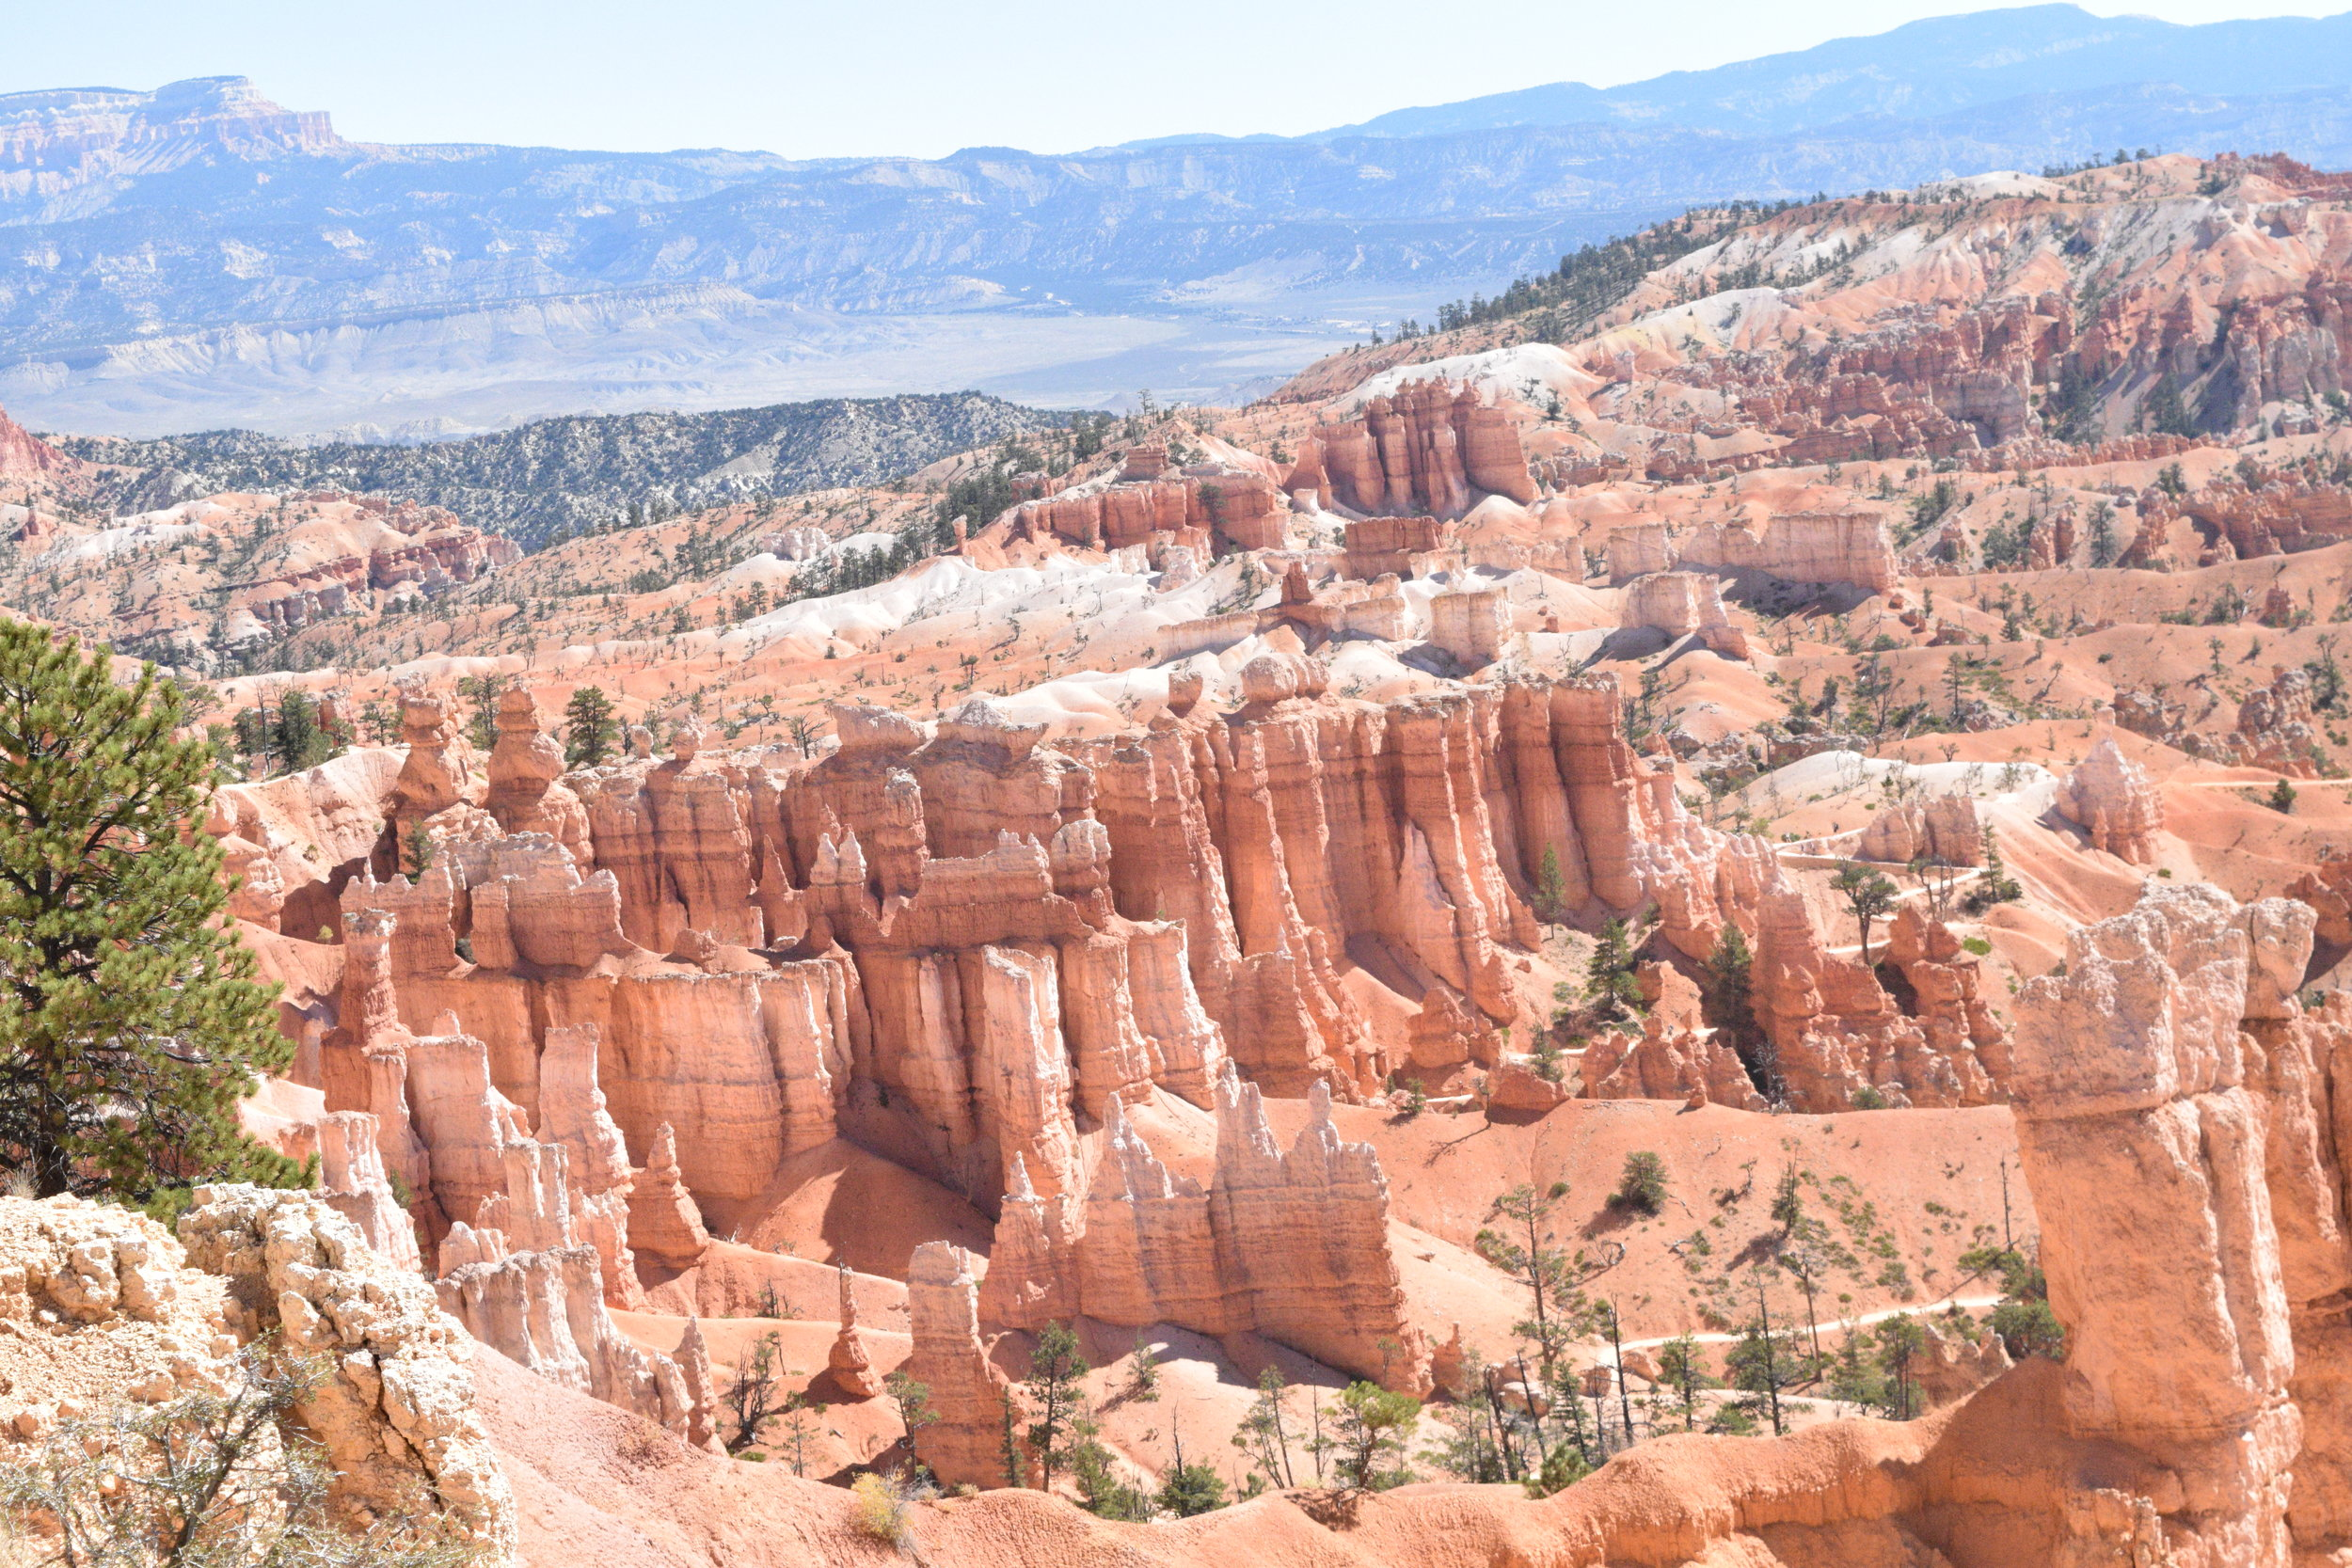 These Hoodoos, so named because the early settlers thought looking at them would put you under their spell, made up a large portion of the park. Carved in sandstone these Hoodoos provided a truly magnificent view.